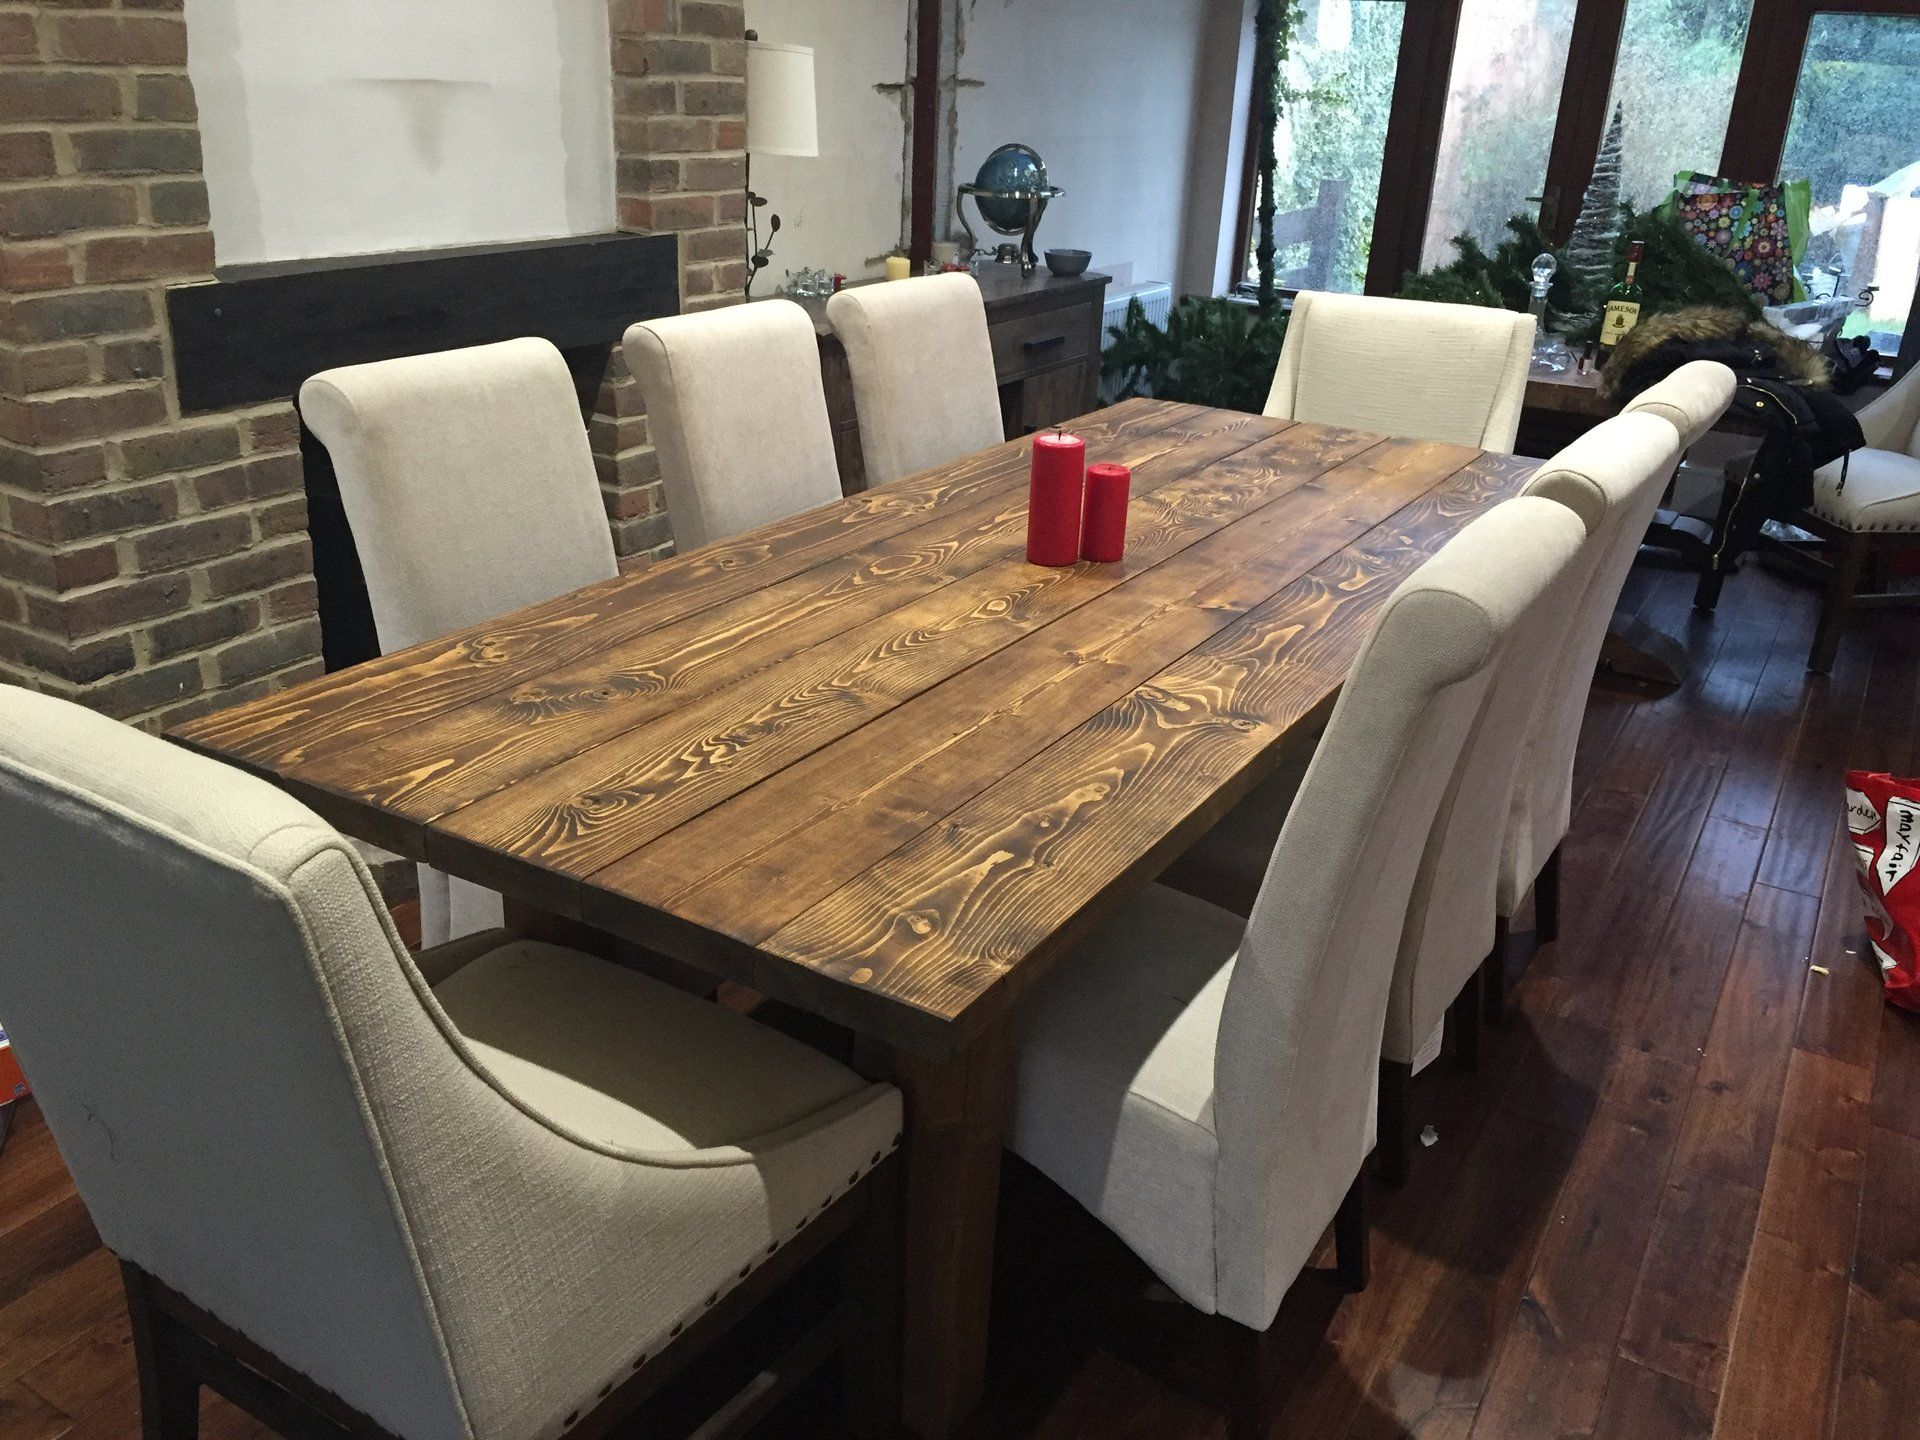 Rustic Dining Table Rustic Dining Chairs 8 Person Dining Table